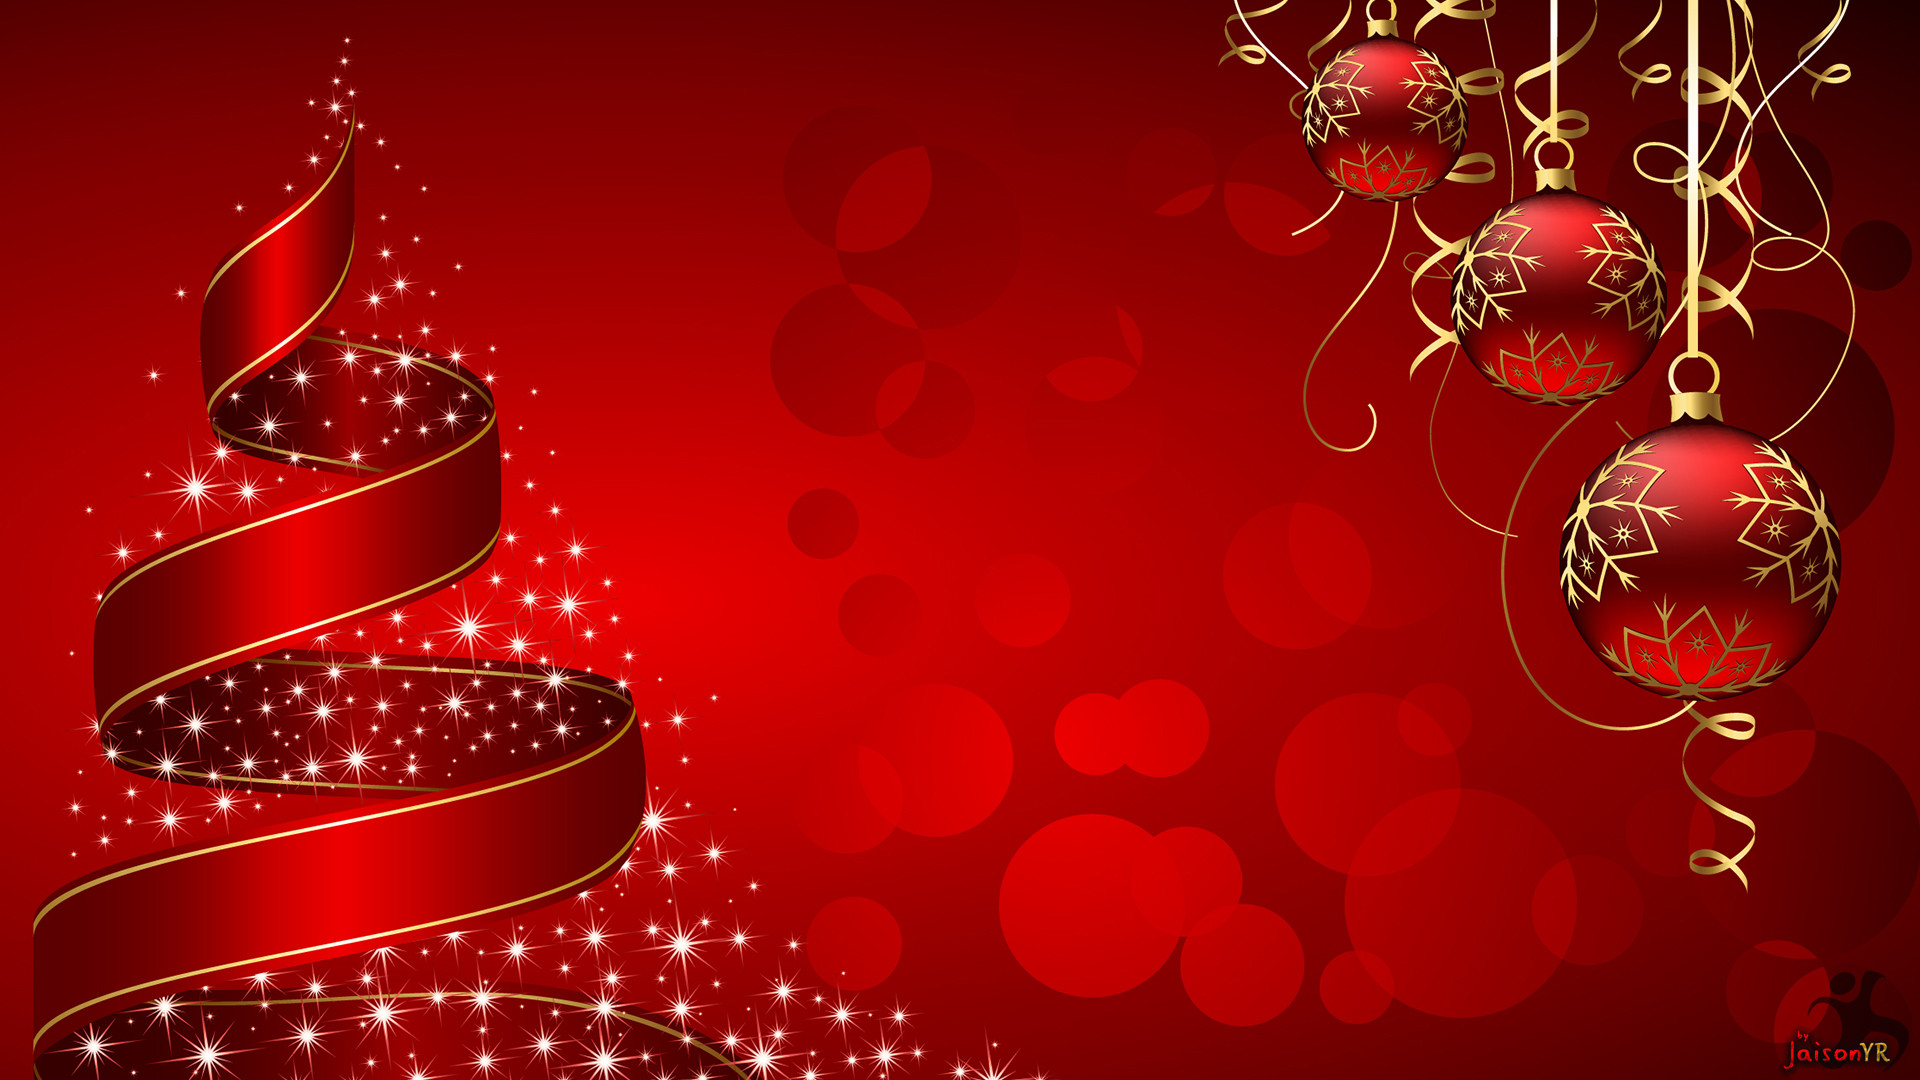 Red Christmas Background.Red Christmas Wallpaper 66 Images